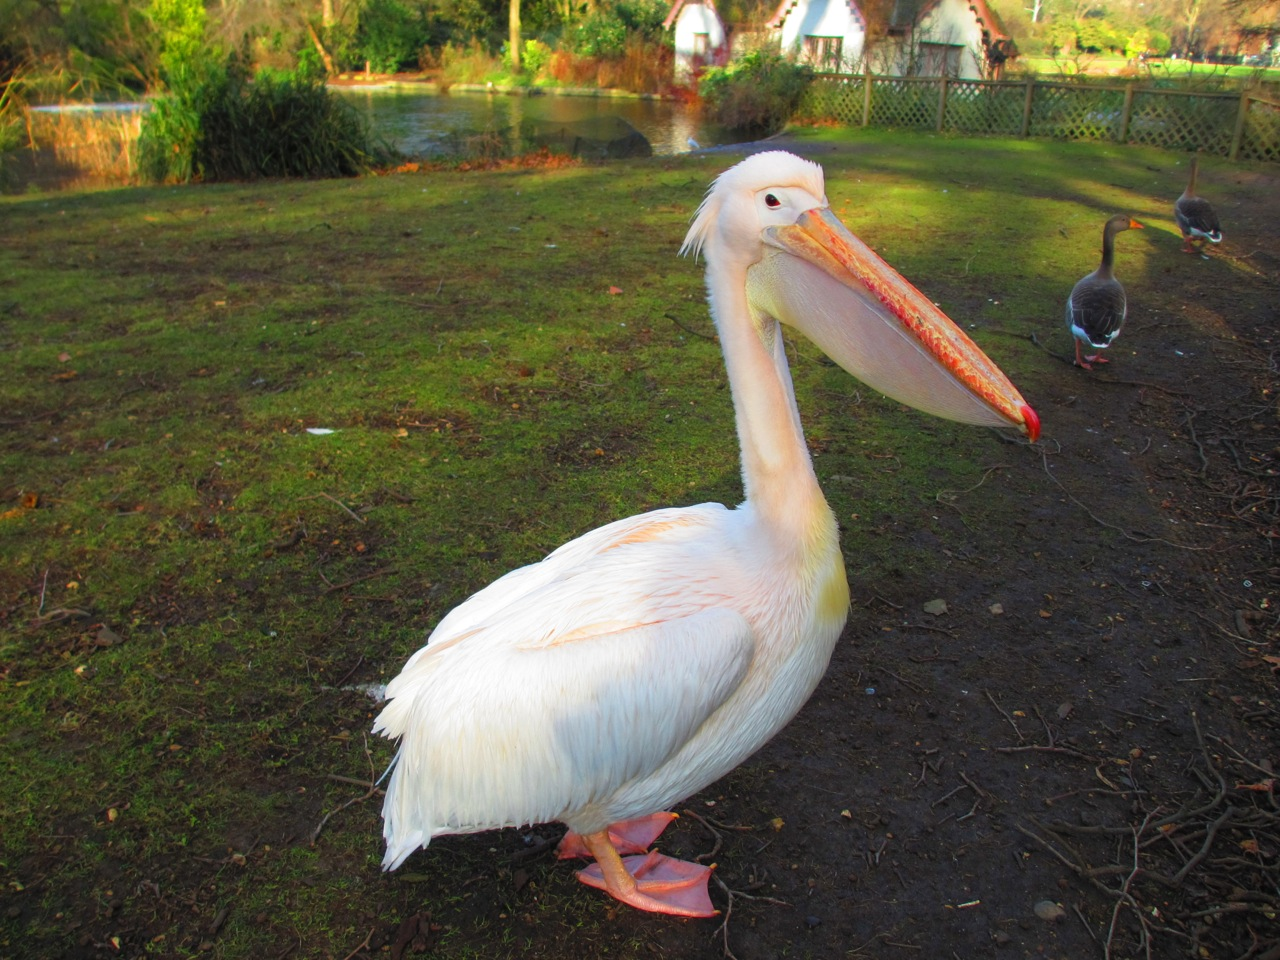 Pelican in St James's Park - spotted on our tour of TV locations for The Crown car-free